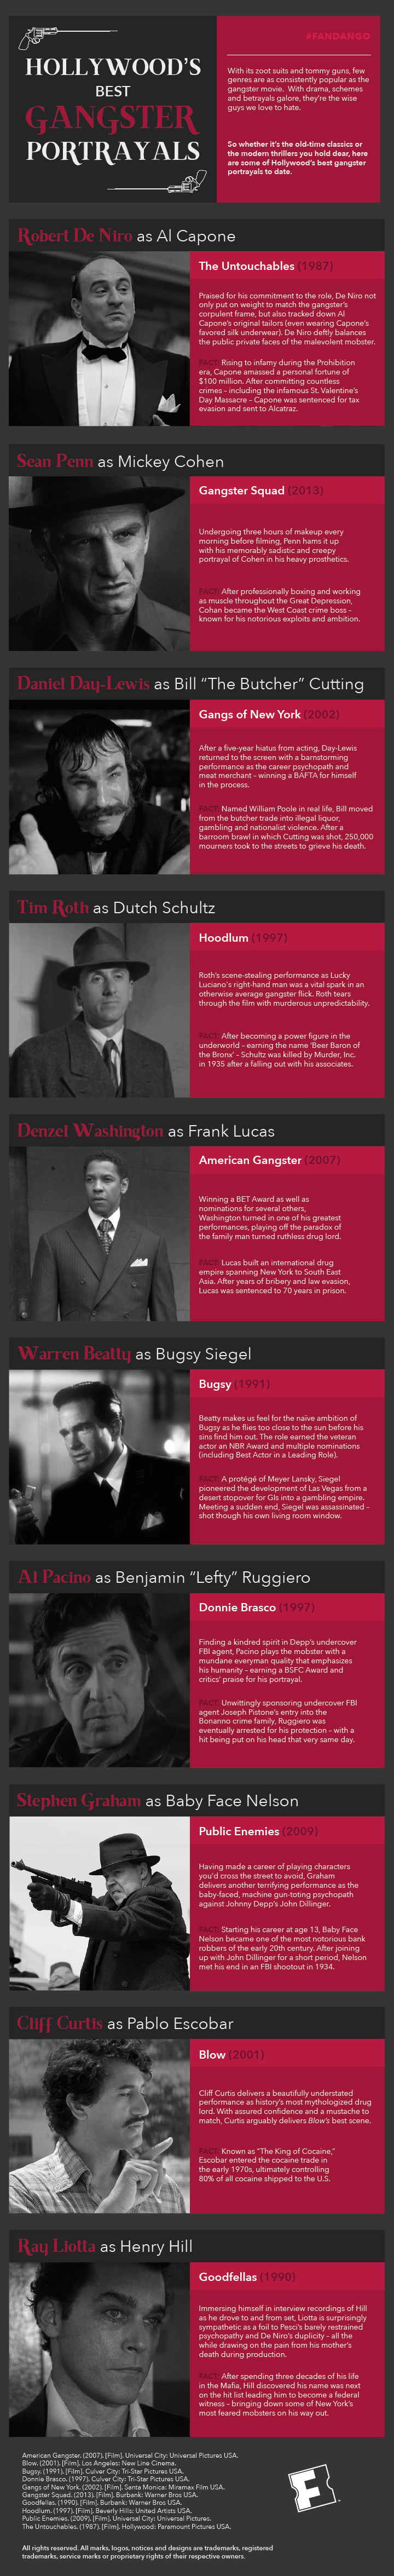 Hollywoods Best Gangster Portrayals